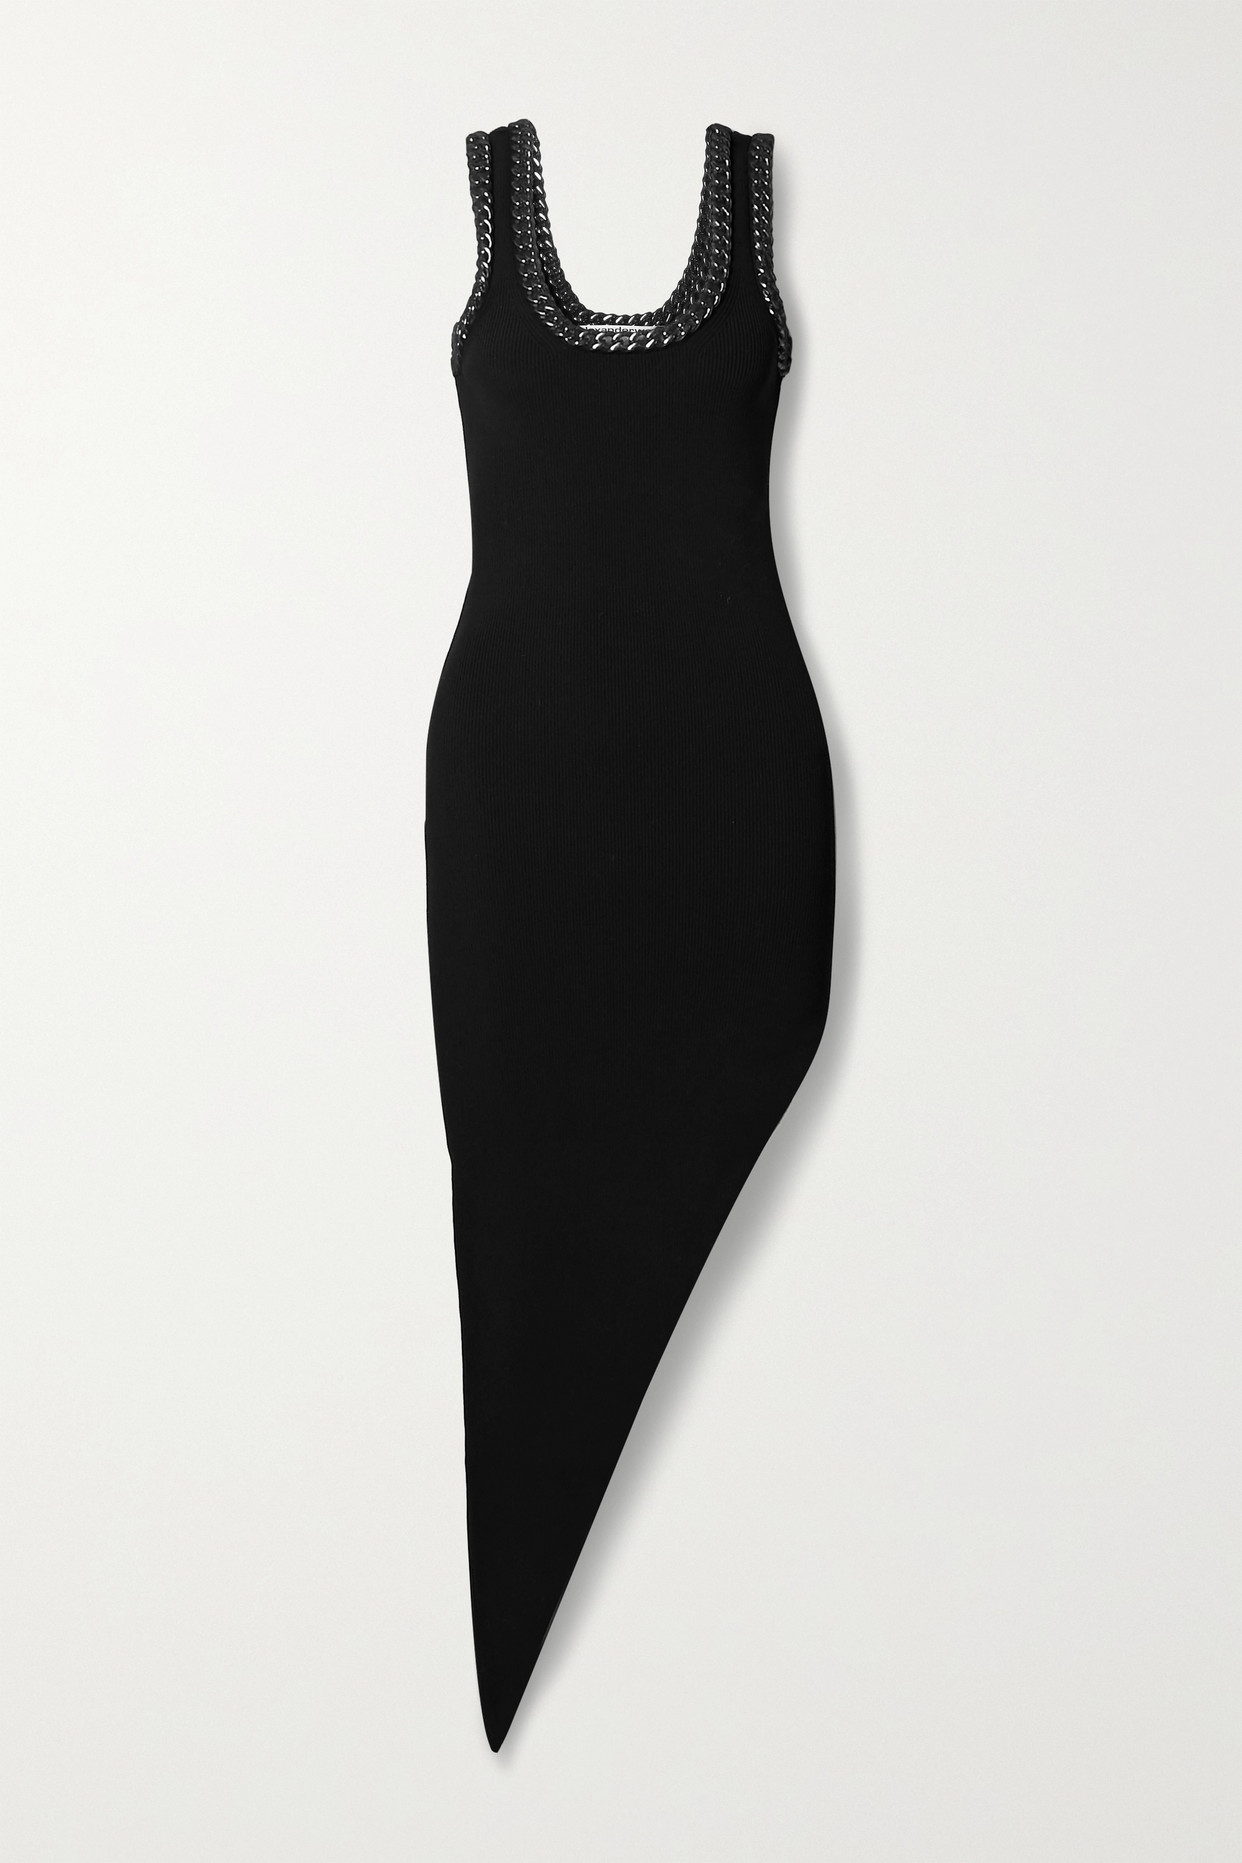 ALEXANDER WANG - Asymmetric Chain-embellished Mesh-trimmed Stretch-knit Dress - Black - x small